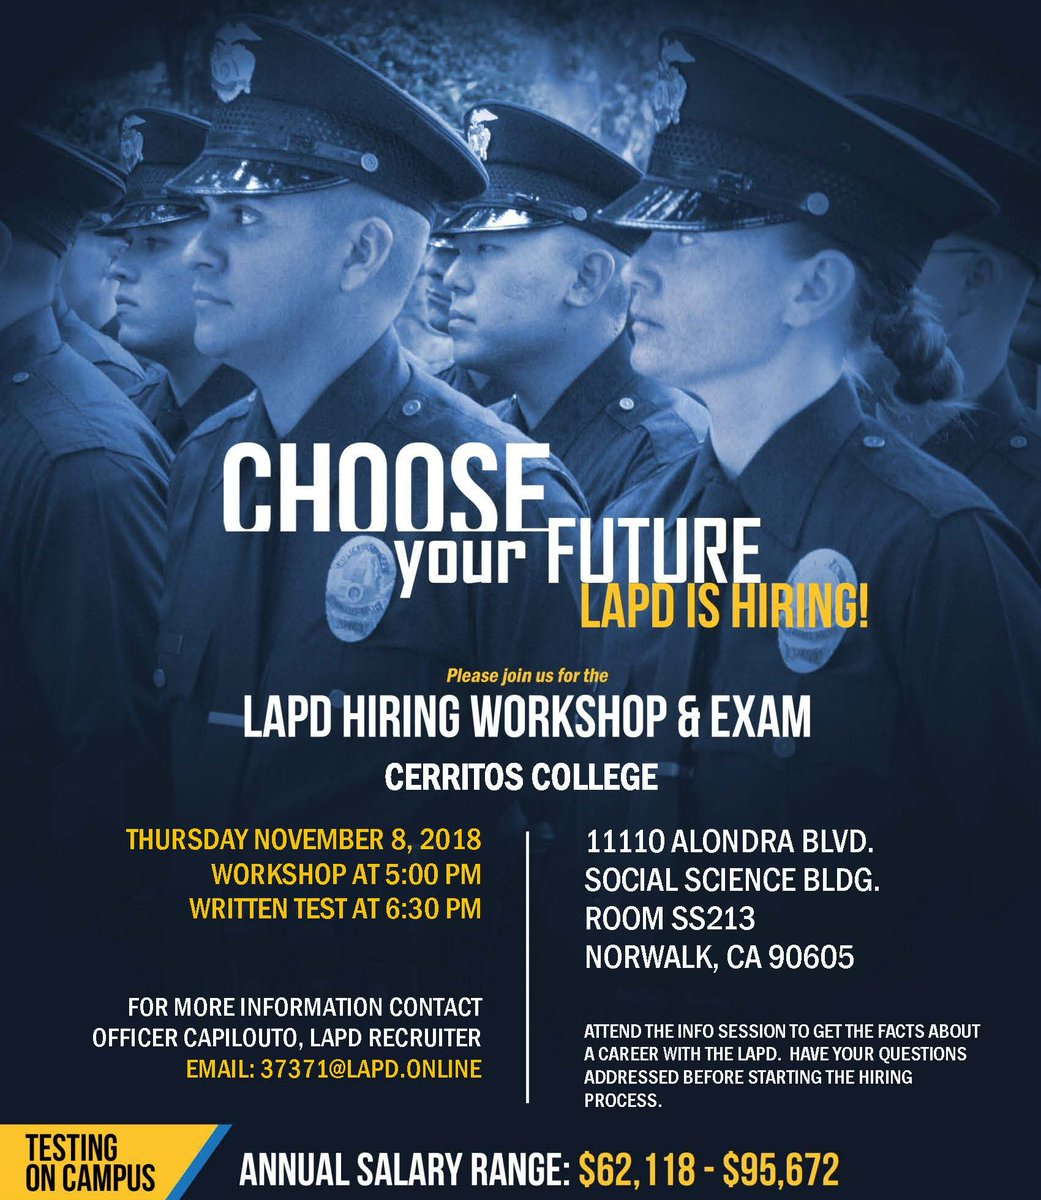 Workshop 95 Addressing Students >> Cerritoscollege On Twitter Lapd Hiring Workshop And Exam On Campus